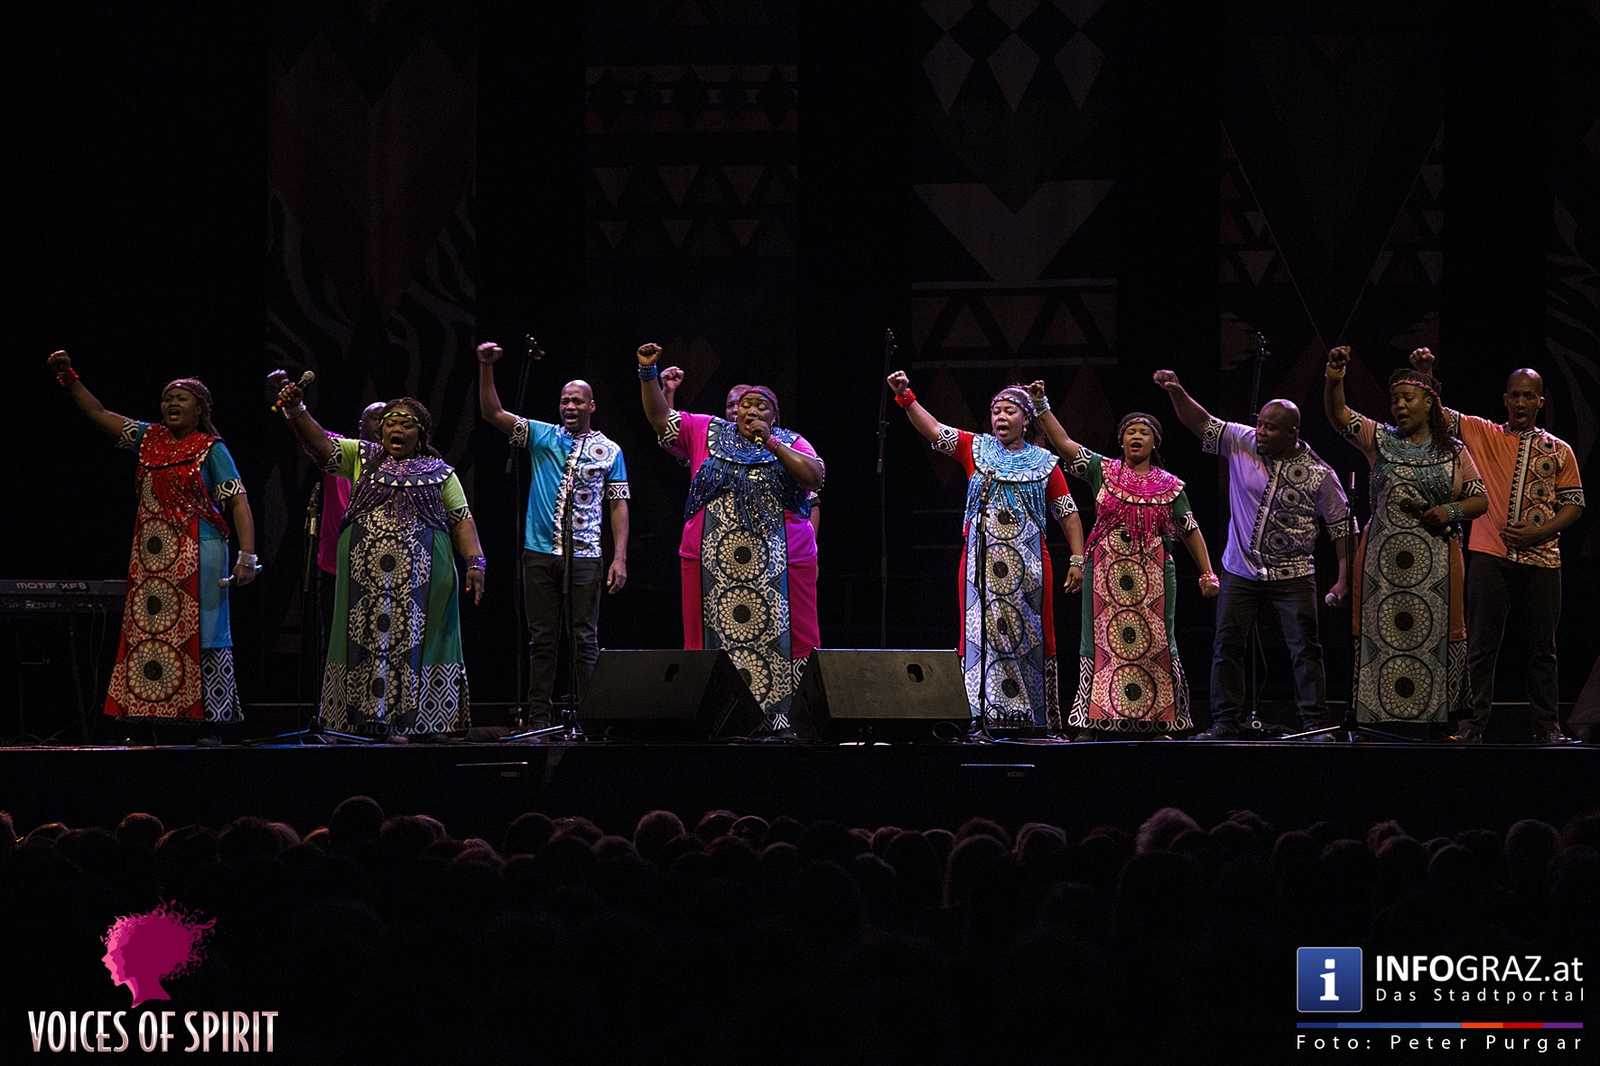 soweto gospel choir internationales chorfestival statdthalle graz voices of spirit eroeffnung festivals 2016 093